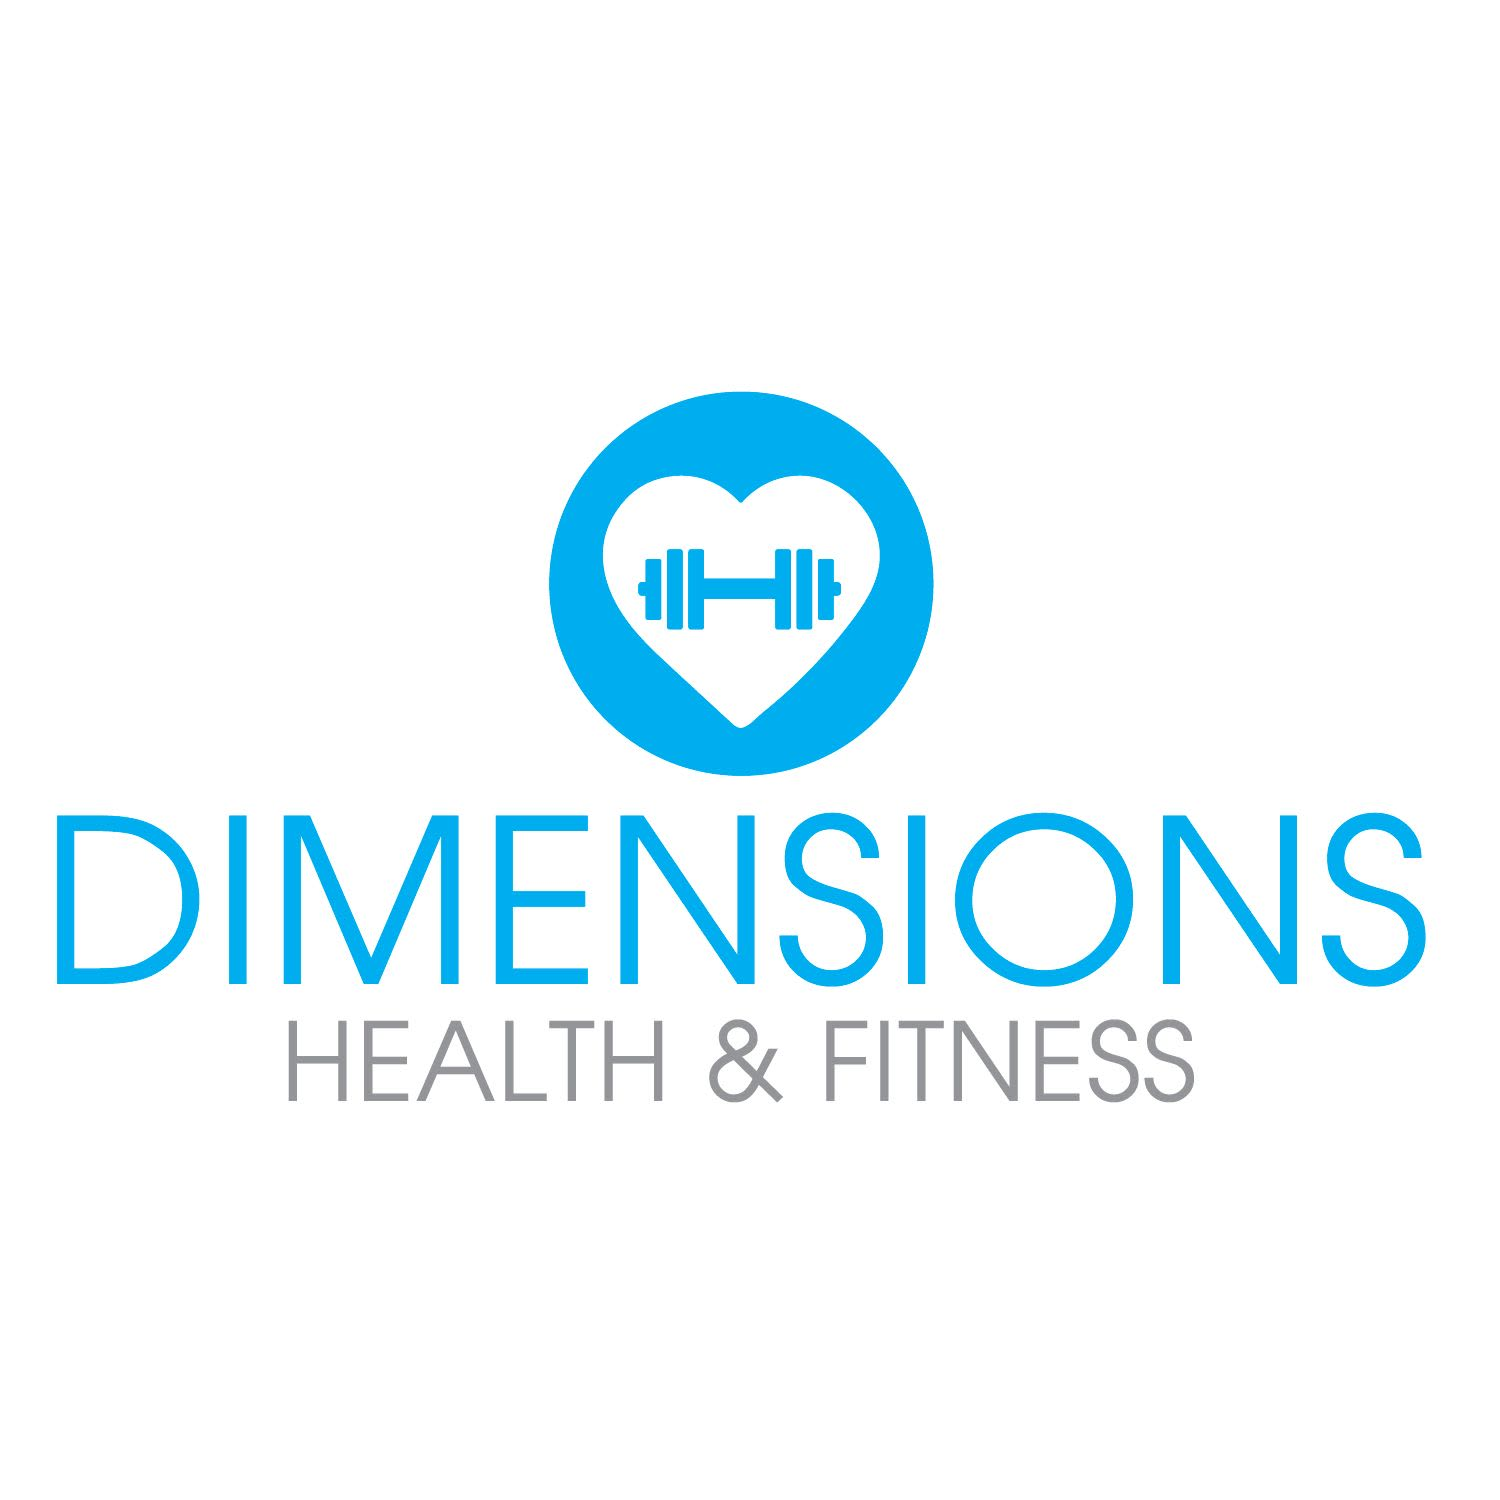 Senior living wellness dimensions at Discovery Village At Southlake in Southlake, Texas